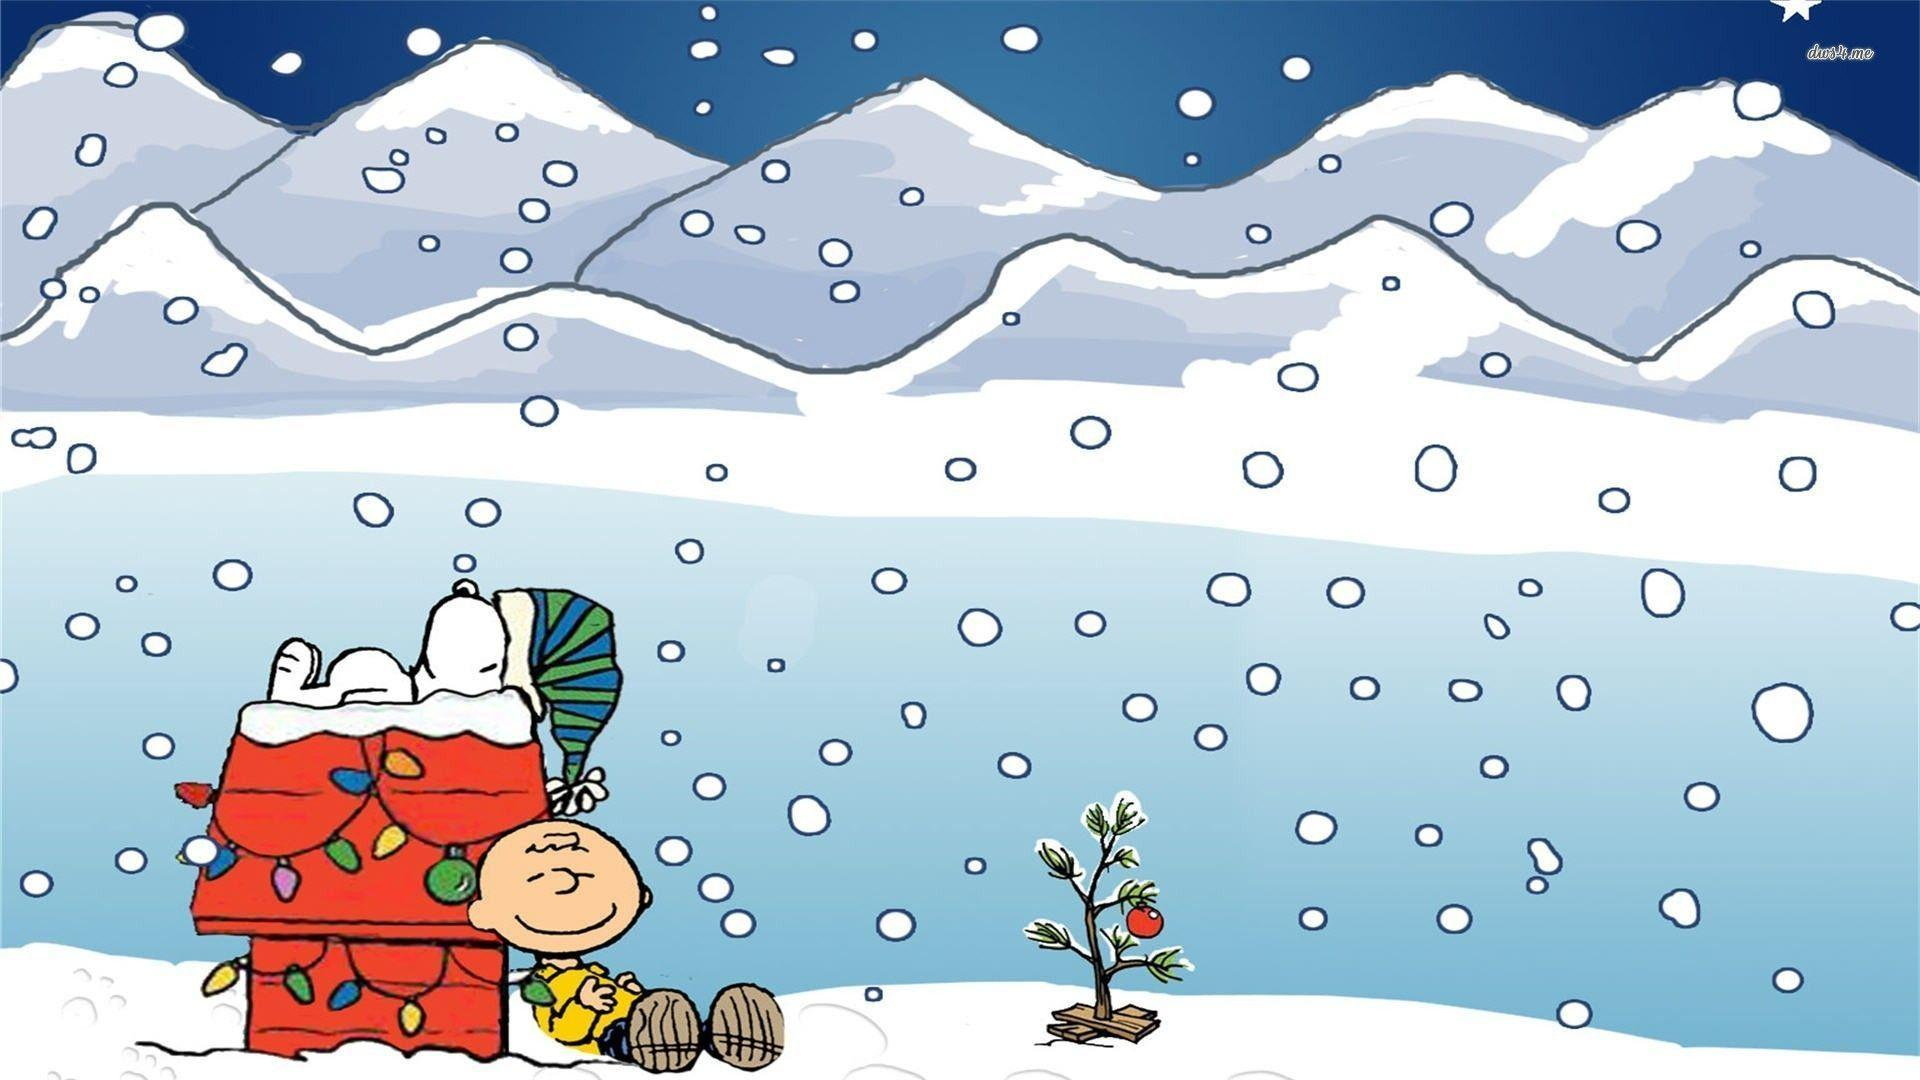 winter wallpaper charlie brown - photo #7